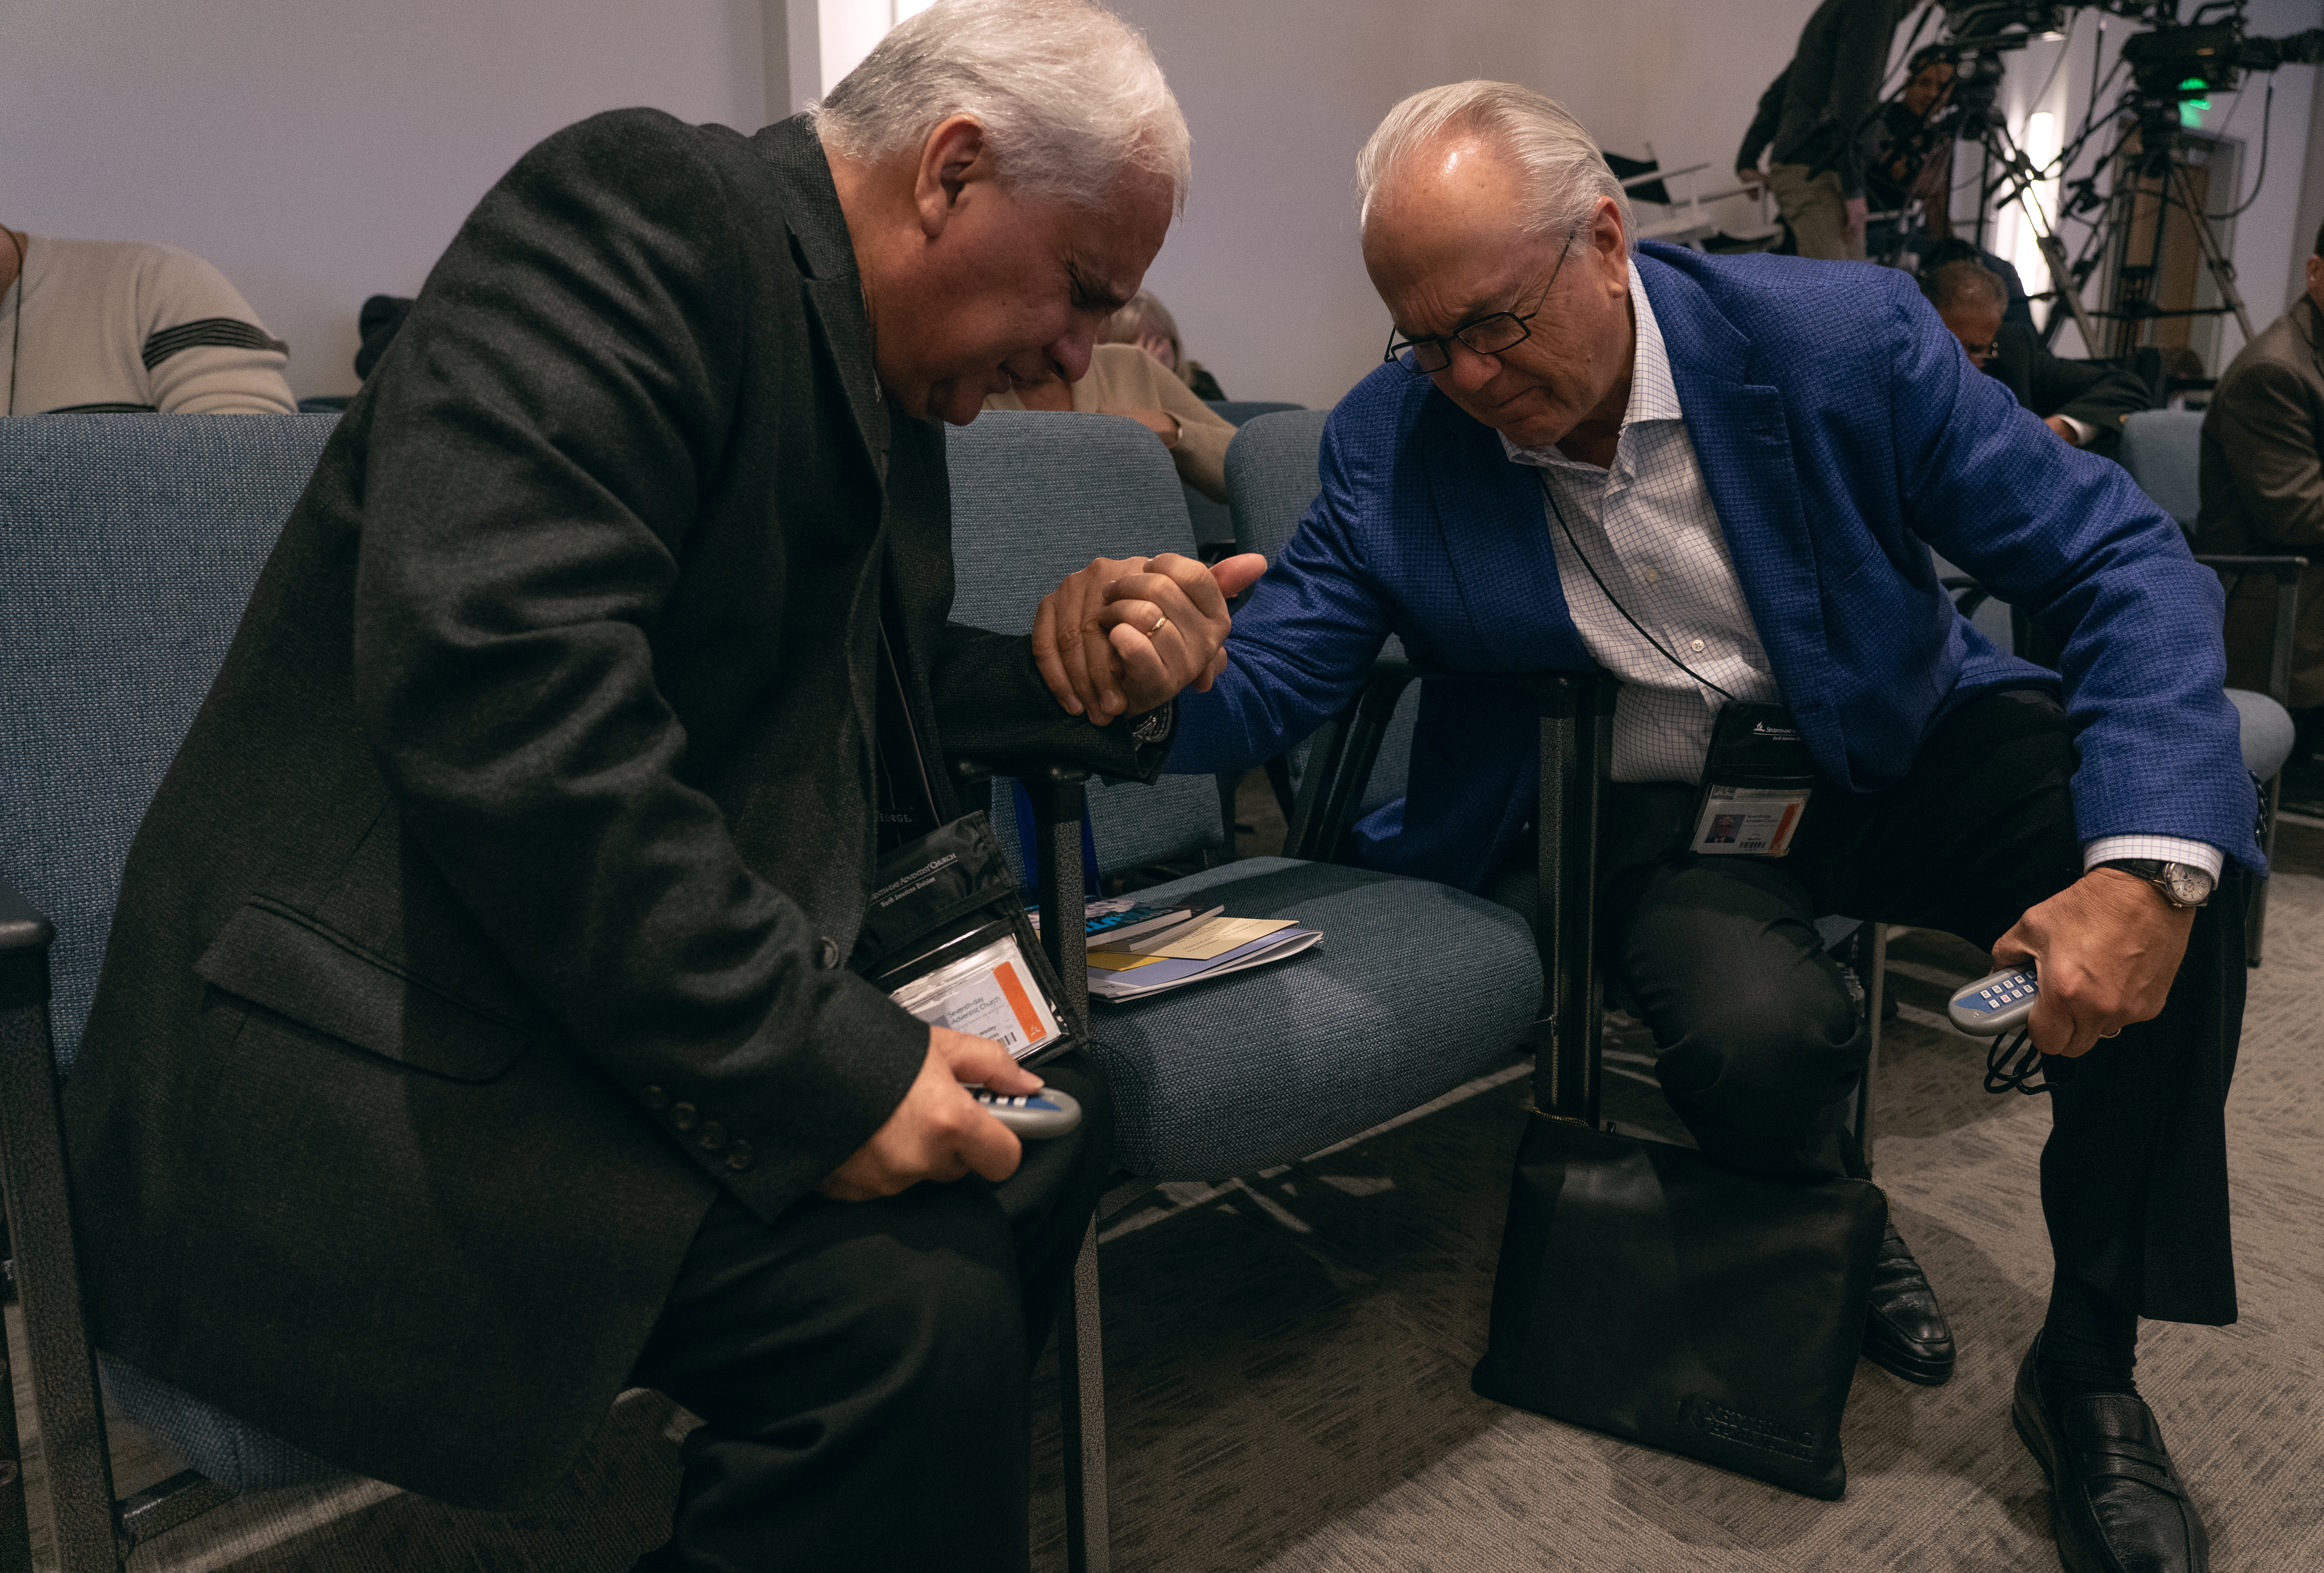 Two delegates pray before members of the NAD executive committee prepare to dialogue over how the General Conference responded to the body's requests for action regarding the voted document from the 2018 Annual Council session dealing with non-compliant Church entities, and NAD's financial parity.